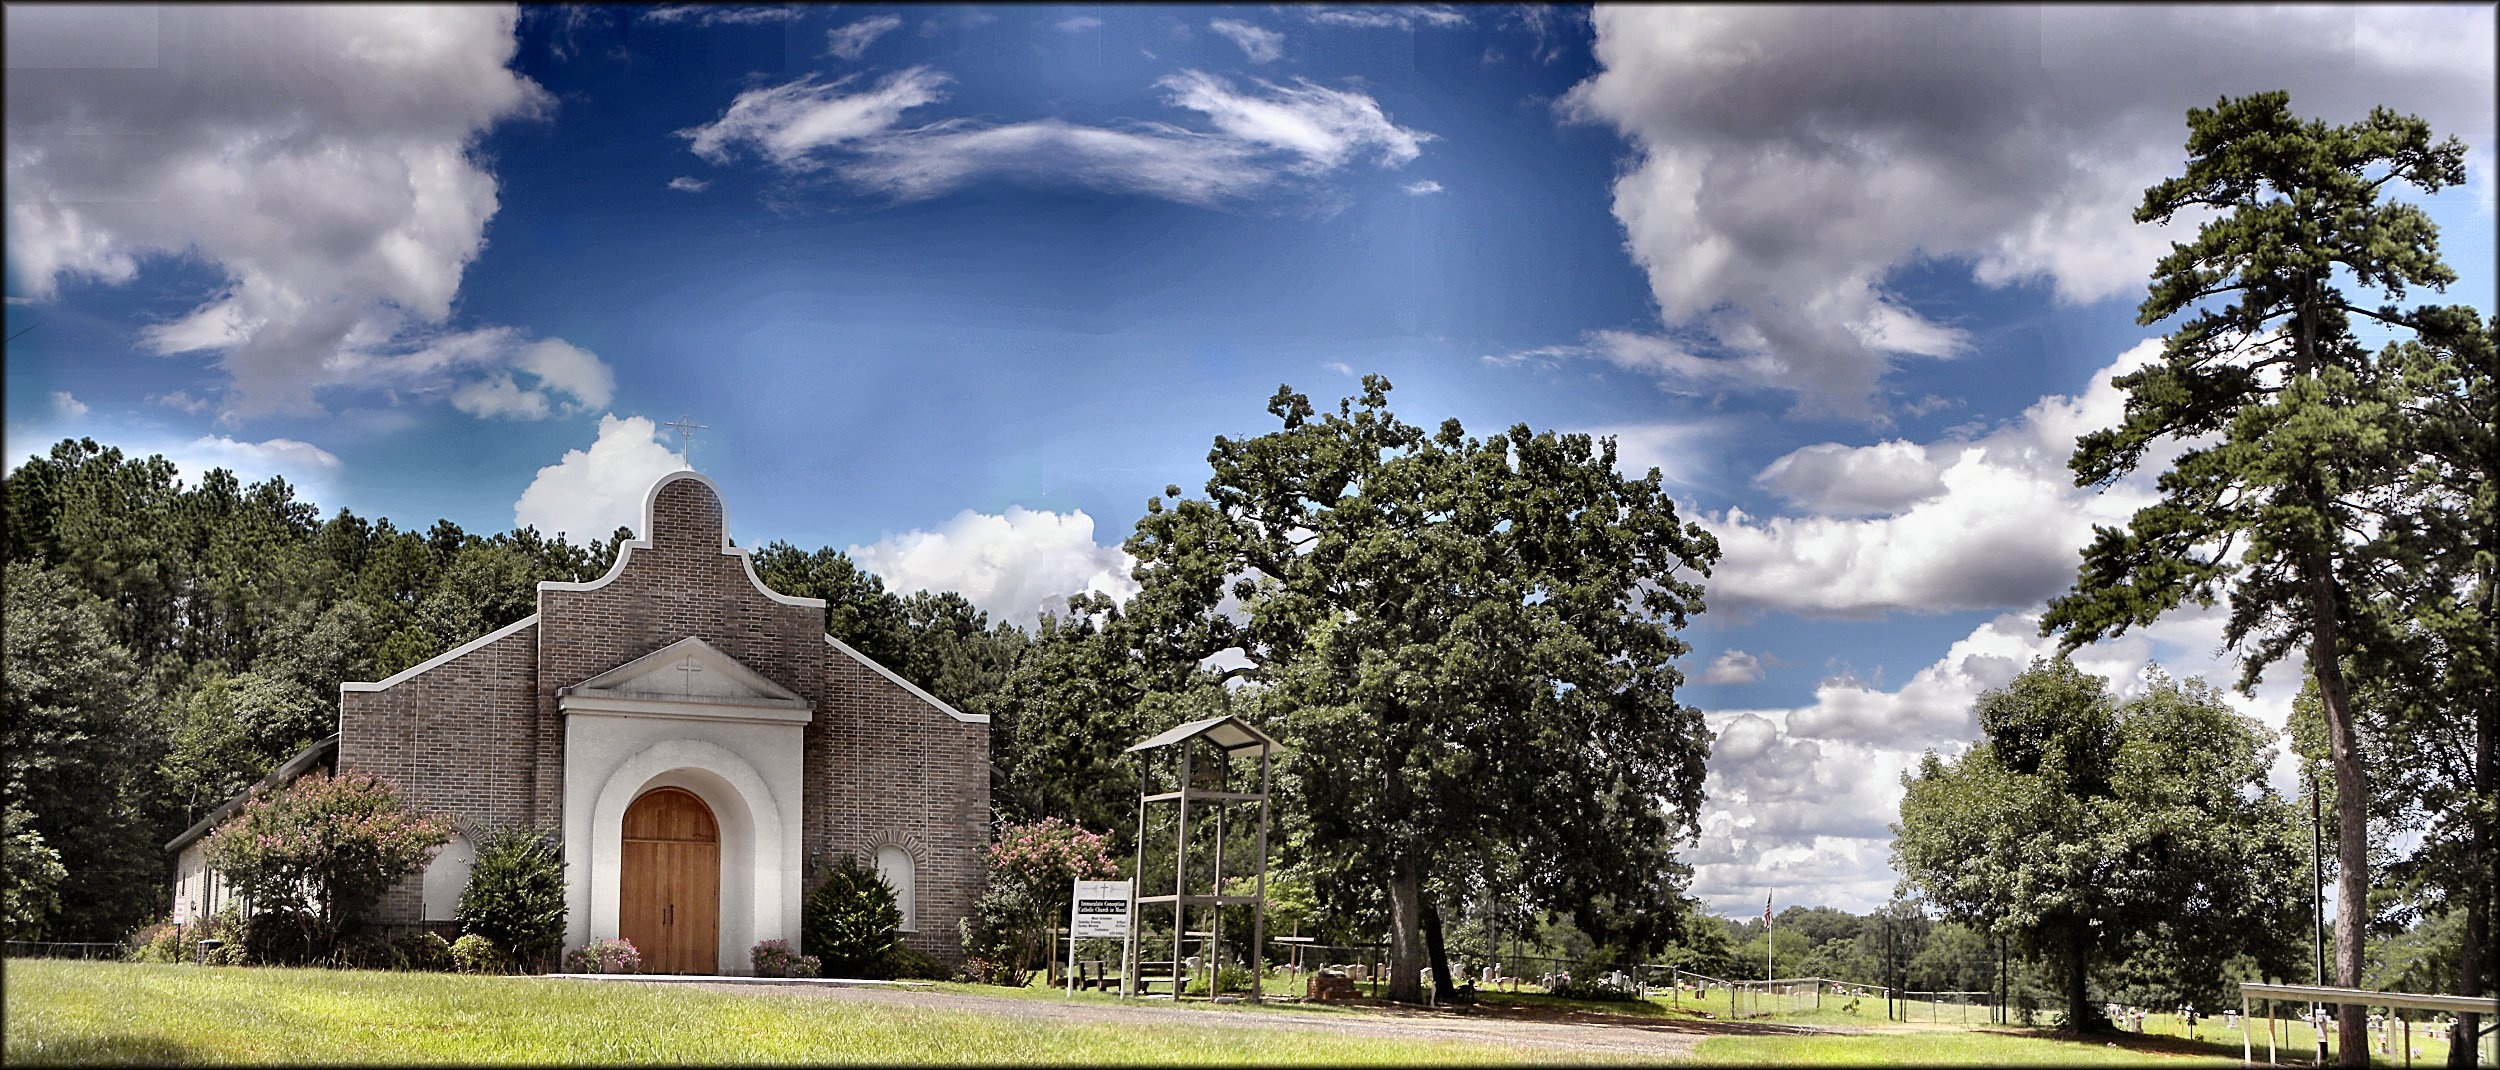 nacogdoches county catholic singles Our lady of lourdes cemetery is located on nacogdoches county road 353  north of texas highway 21, west of chireno from loop 224 in nacogdoches,.